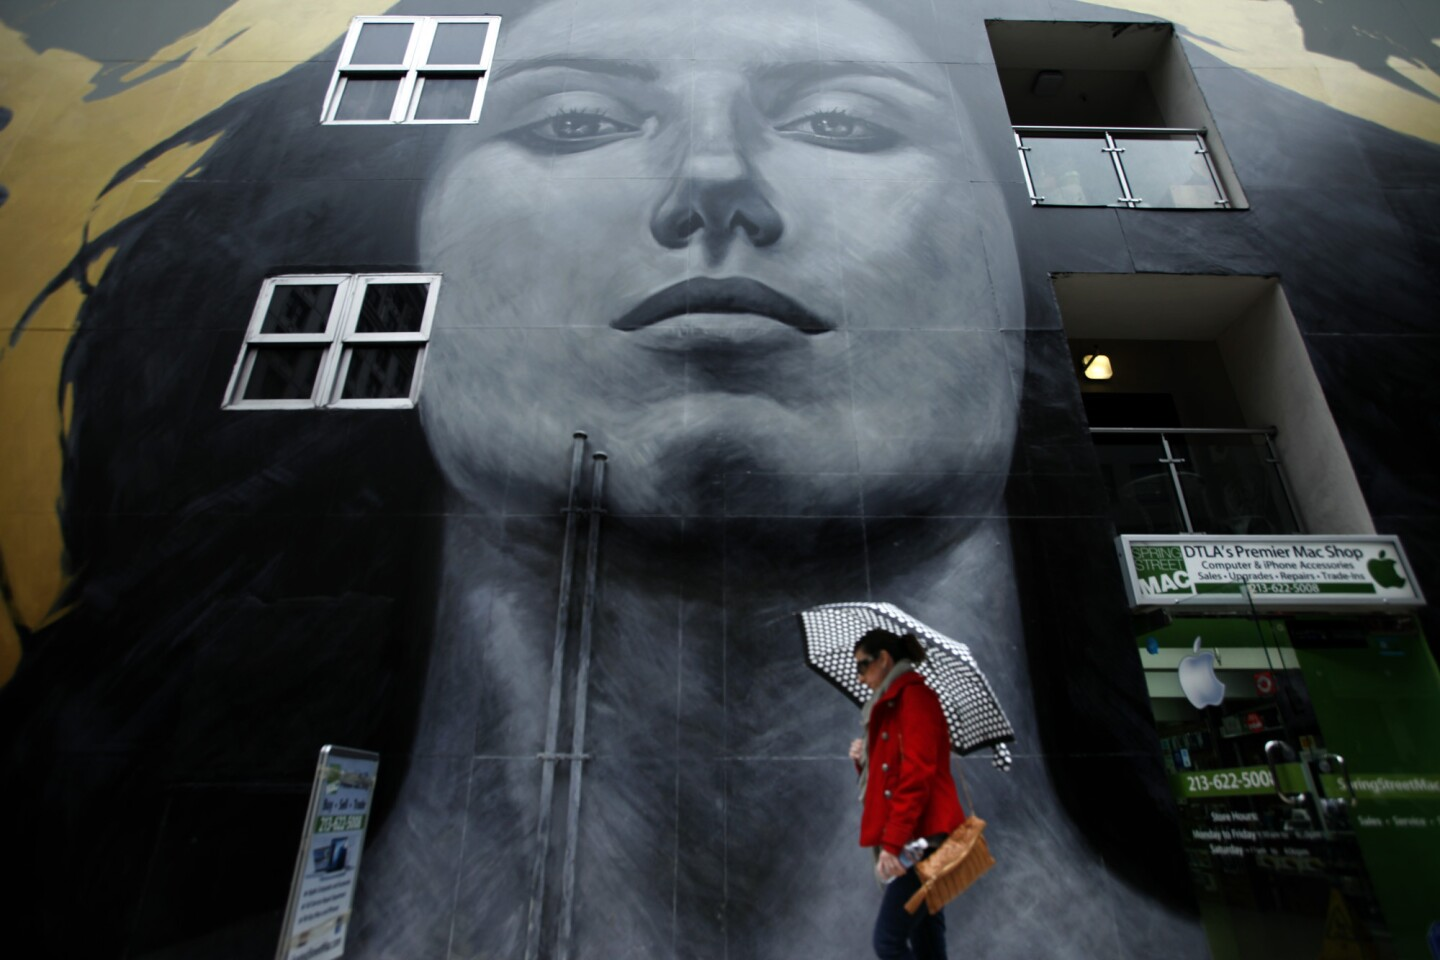 """Ana Fuentes makes her way through the rain and walks past the mural by Robert Vargas and Michael Blaze entitled, """"Our Lady of DTLA,"""" that graces the SB Tower building at 6ht and Spring Streets People in downtown Los Angeles."""